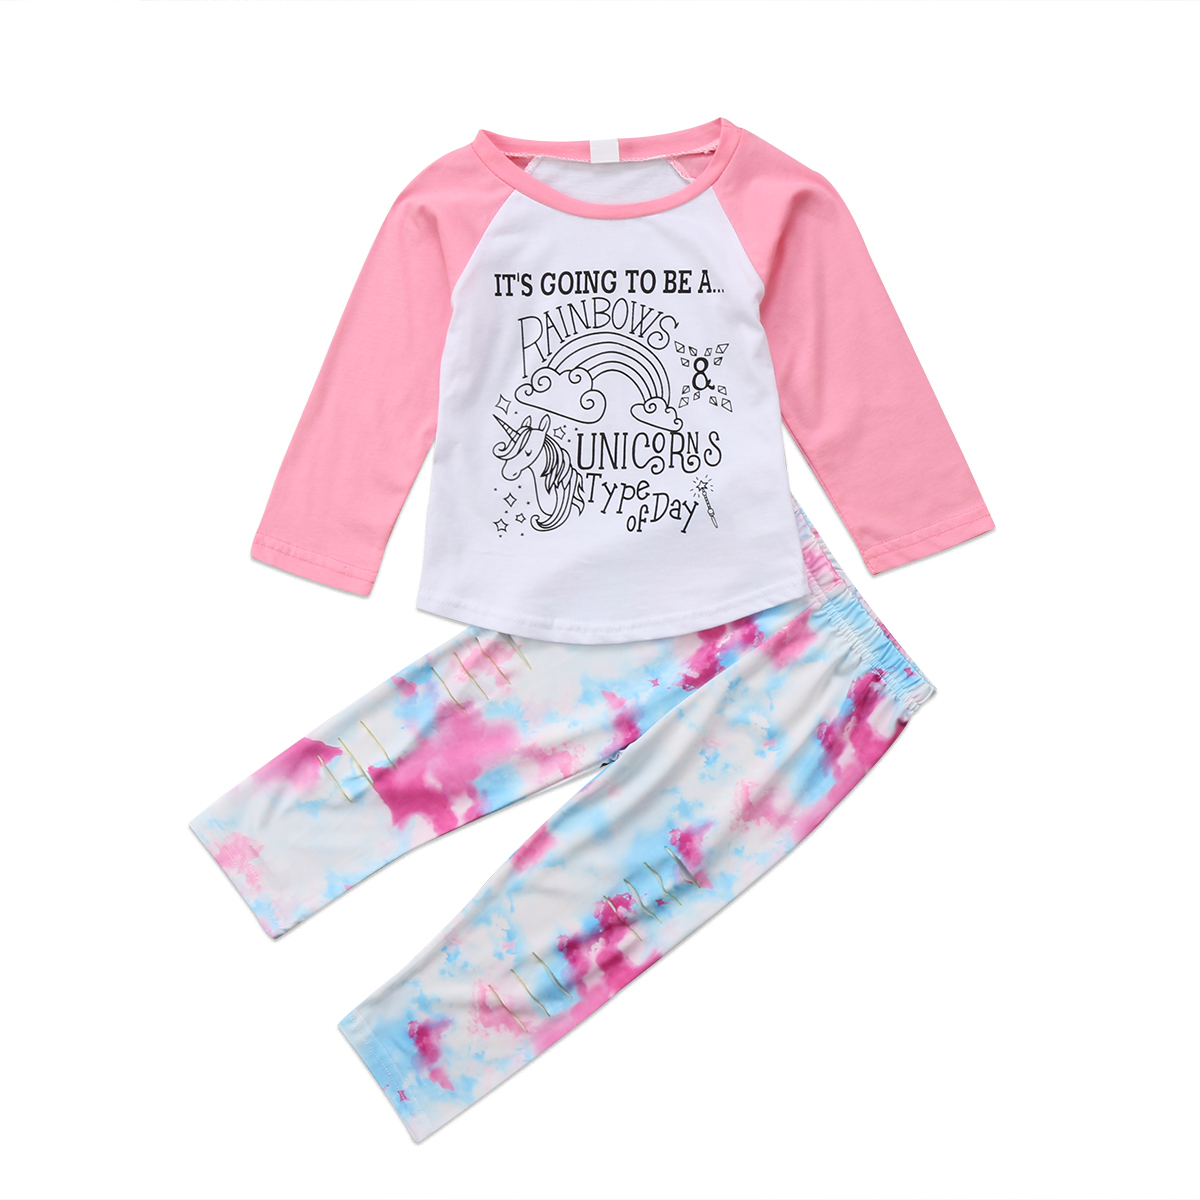 2017 Unicorn Kids Baby Girls Cute Anime Outfits Clothes T ...